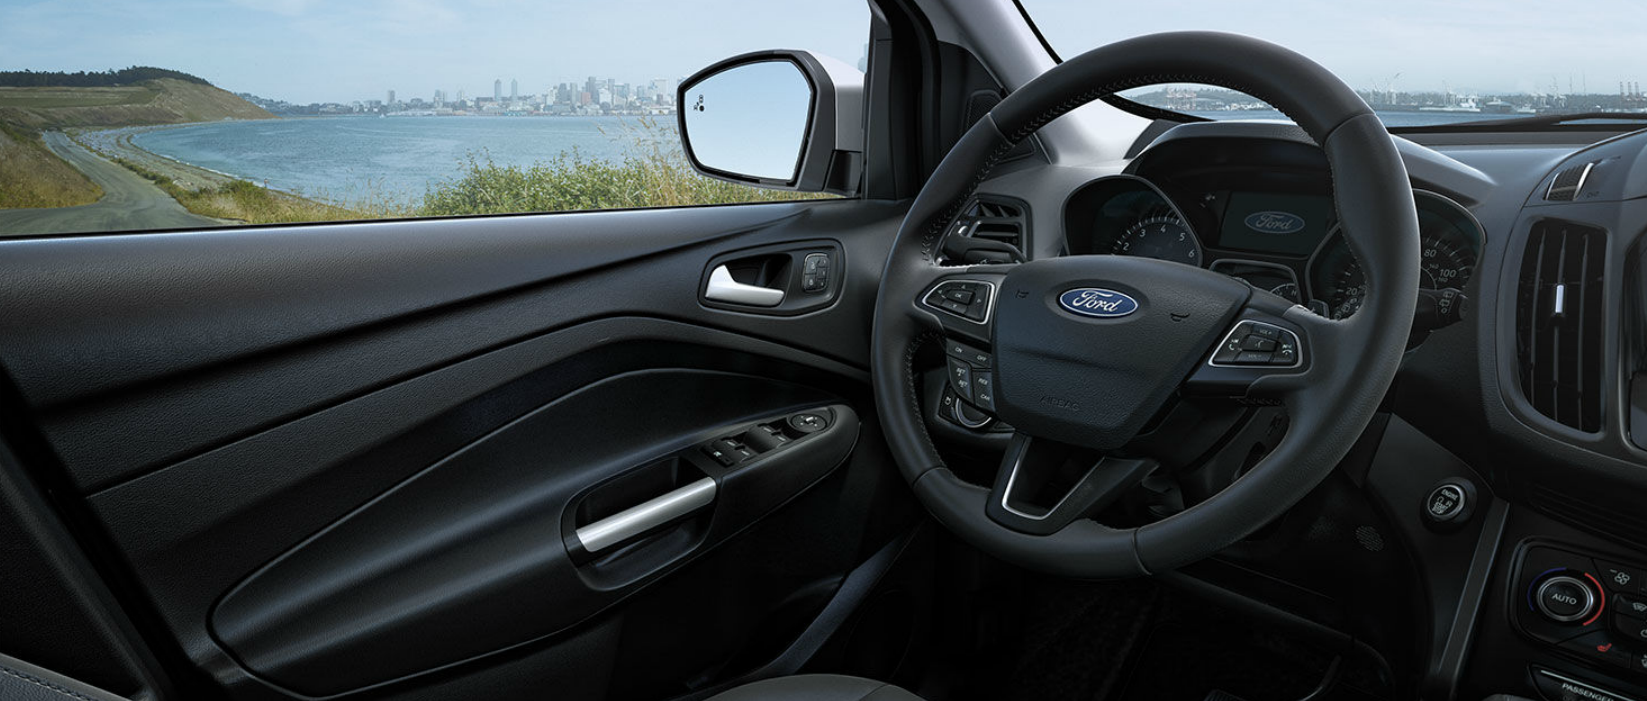 Valley Chevy - Top-Rated SUVs to Buy: Ford Escape - Driver's Seat